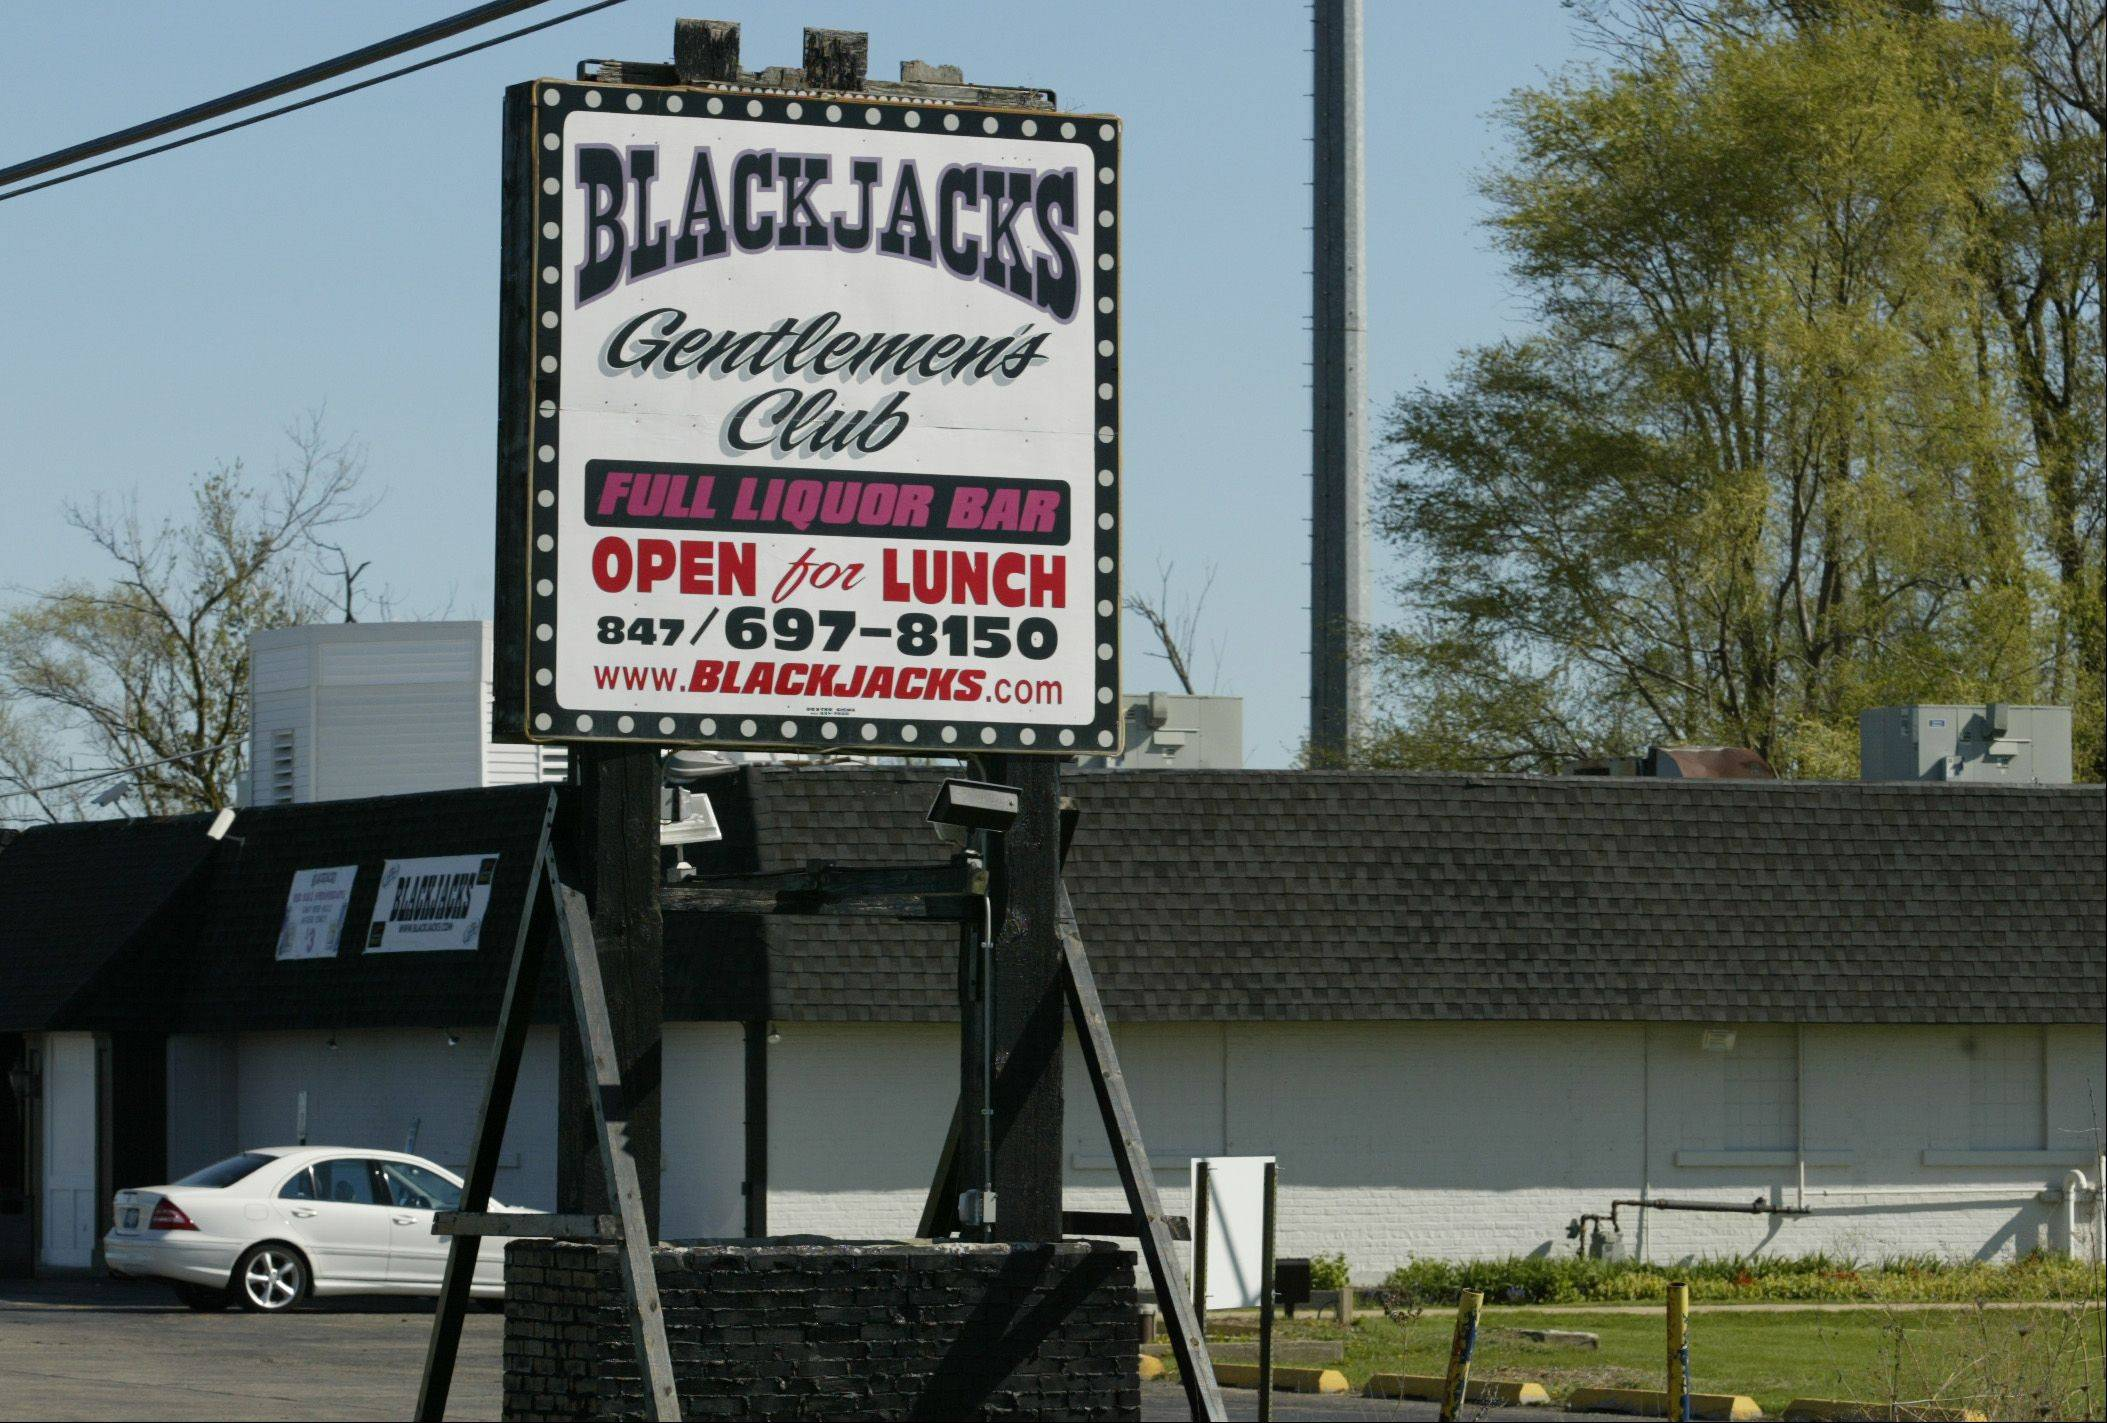 Blackjacks Gentlemen�s Club between St. Charles and Elgin.